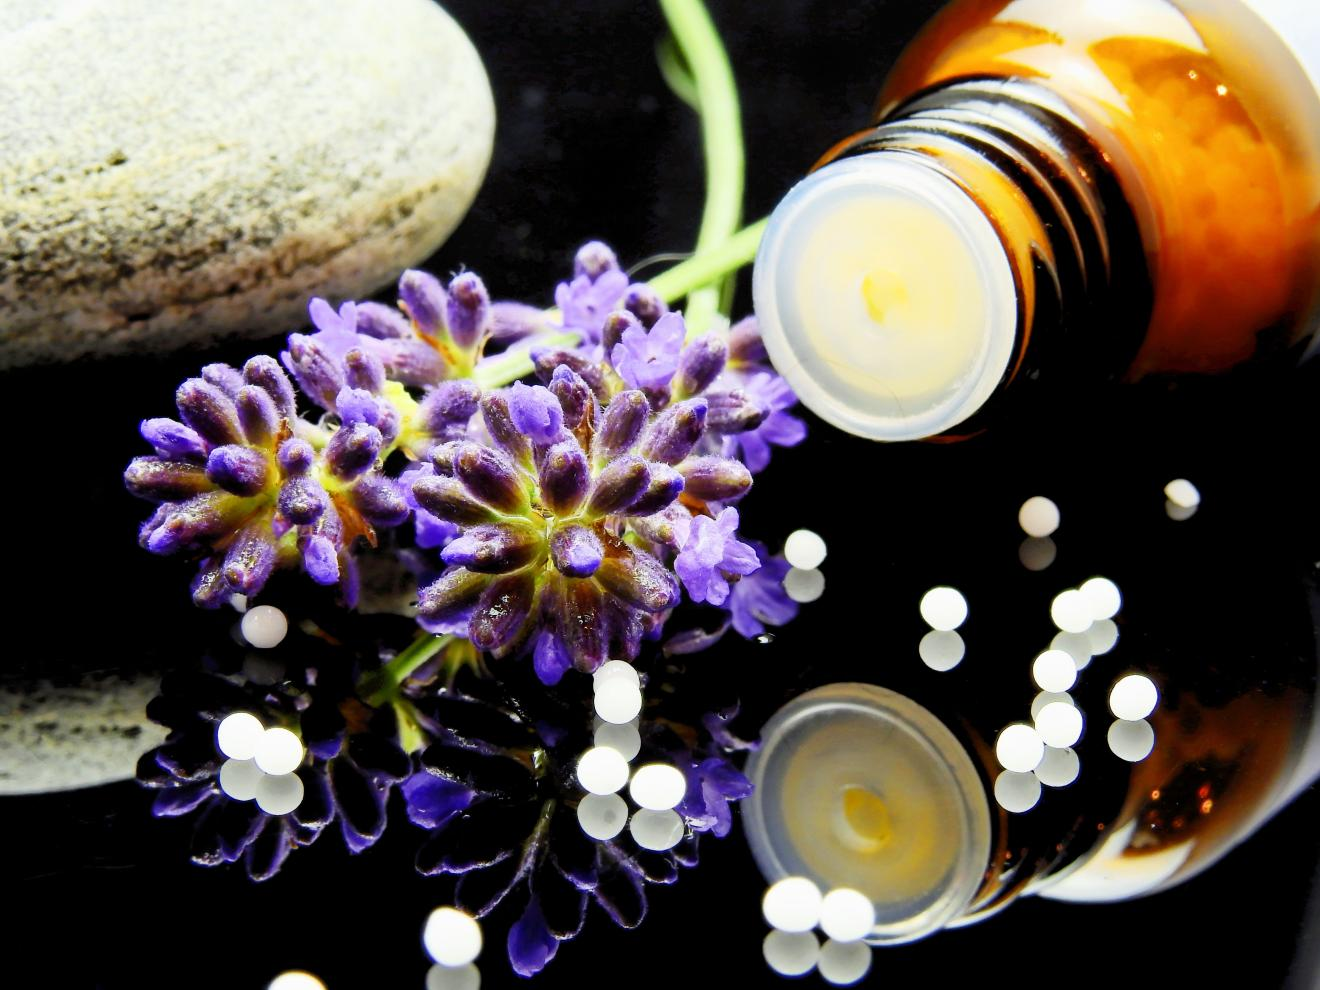 Naturopathy - bottle and flora